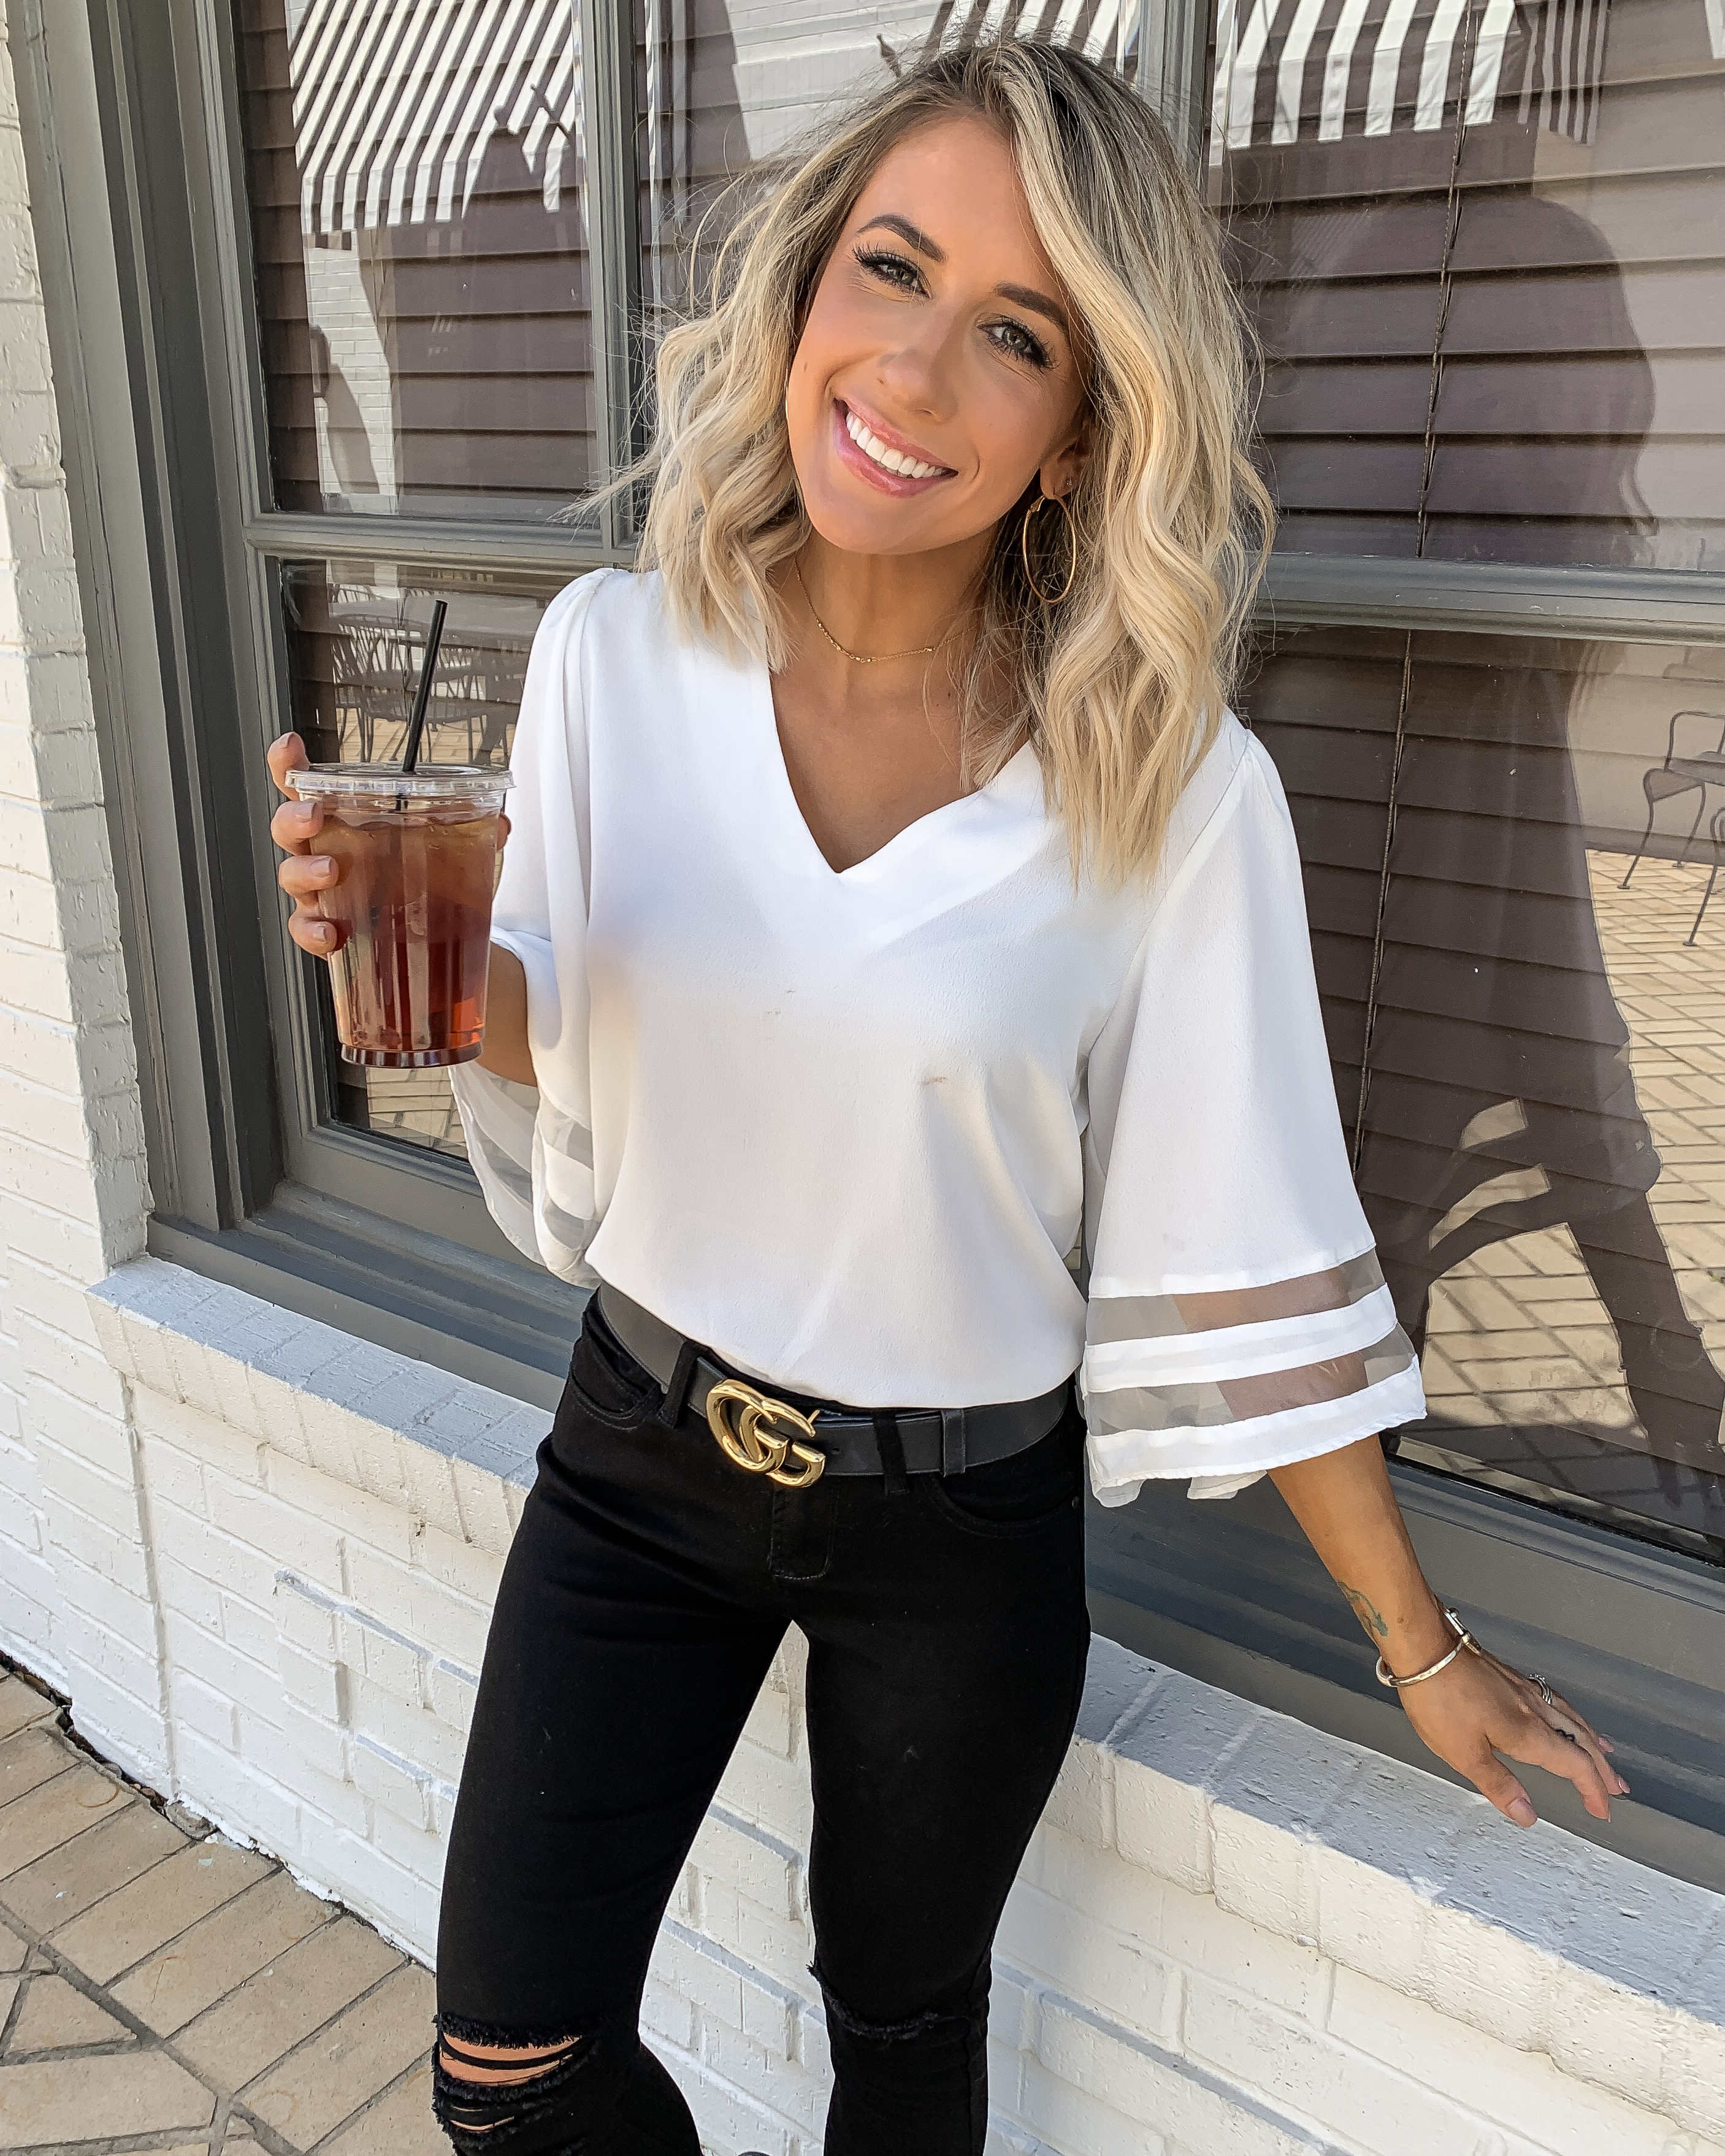 White flowy top Black skinny jeans gucci belt black tory burch millers amaryllis short hair outfit Laura Beverlin3